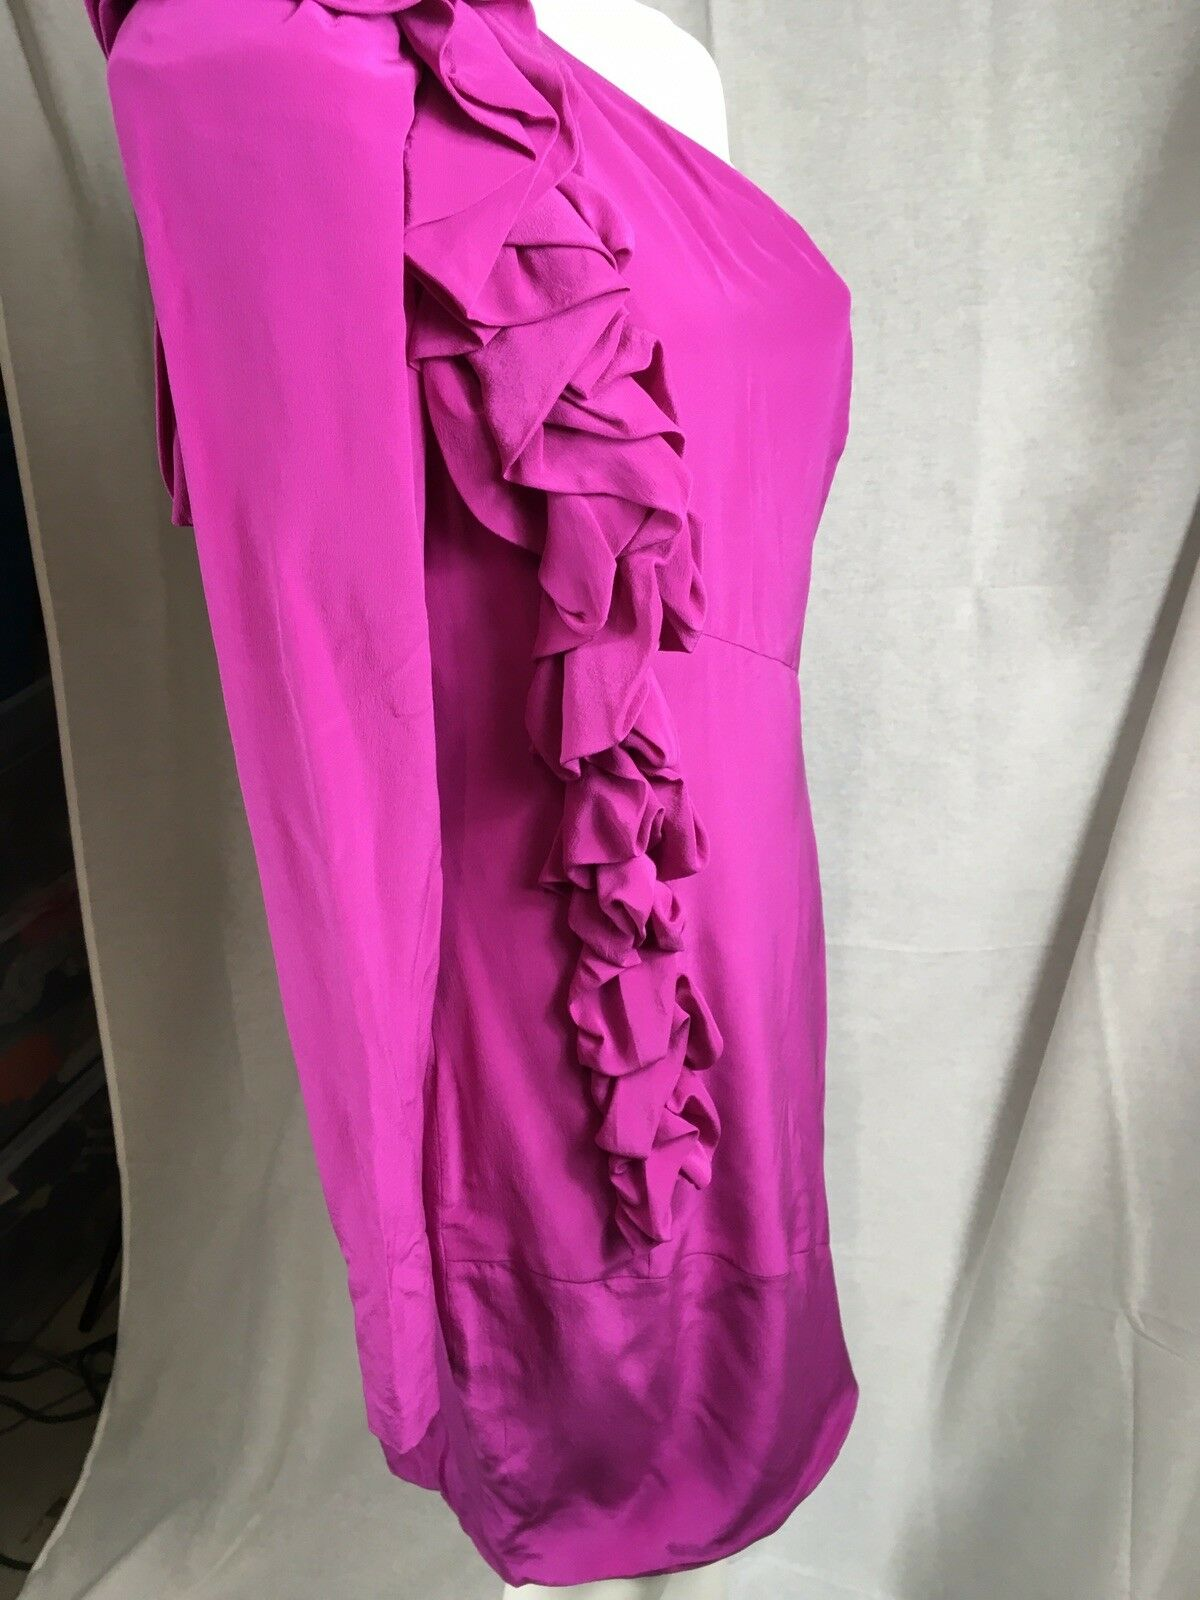 NWT Robert Rodriguez Dress Hot Pink Pink Pink Fuchsia One Shoulder Ruffle Dress Size 10 2c9731